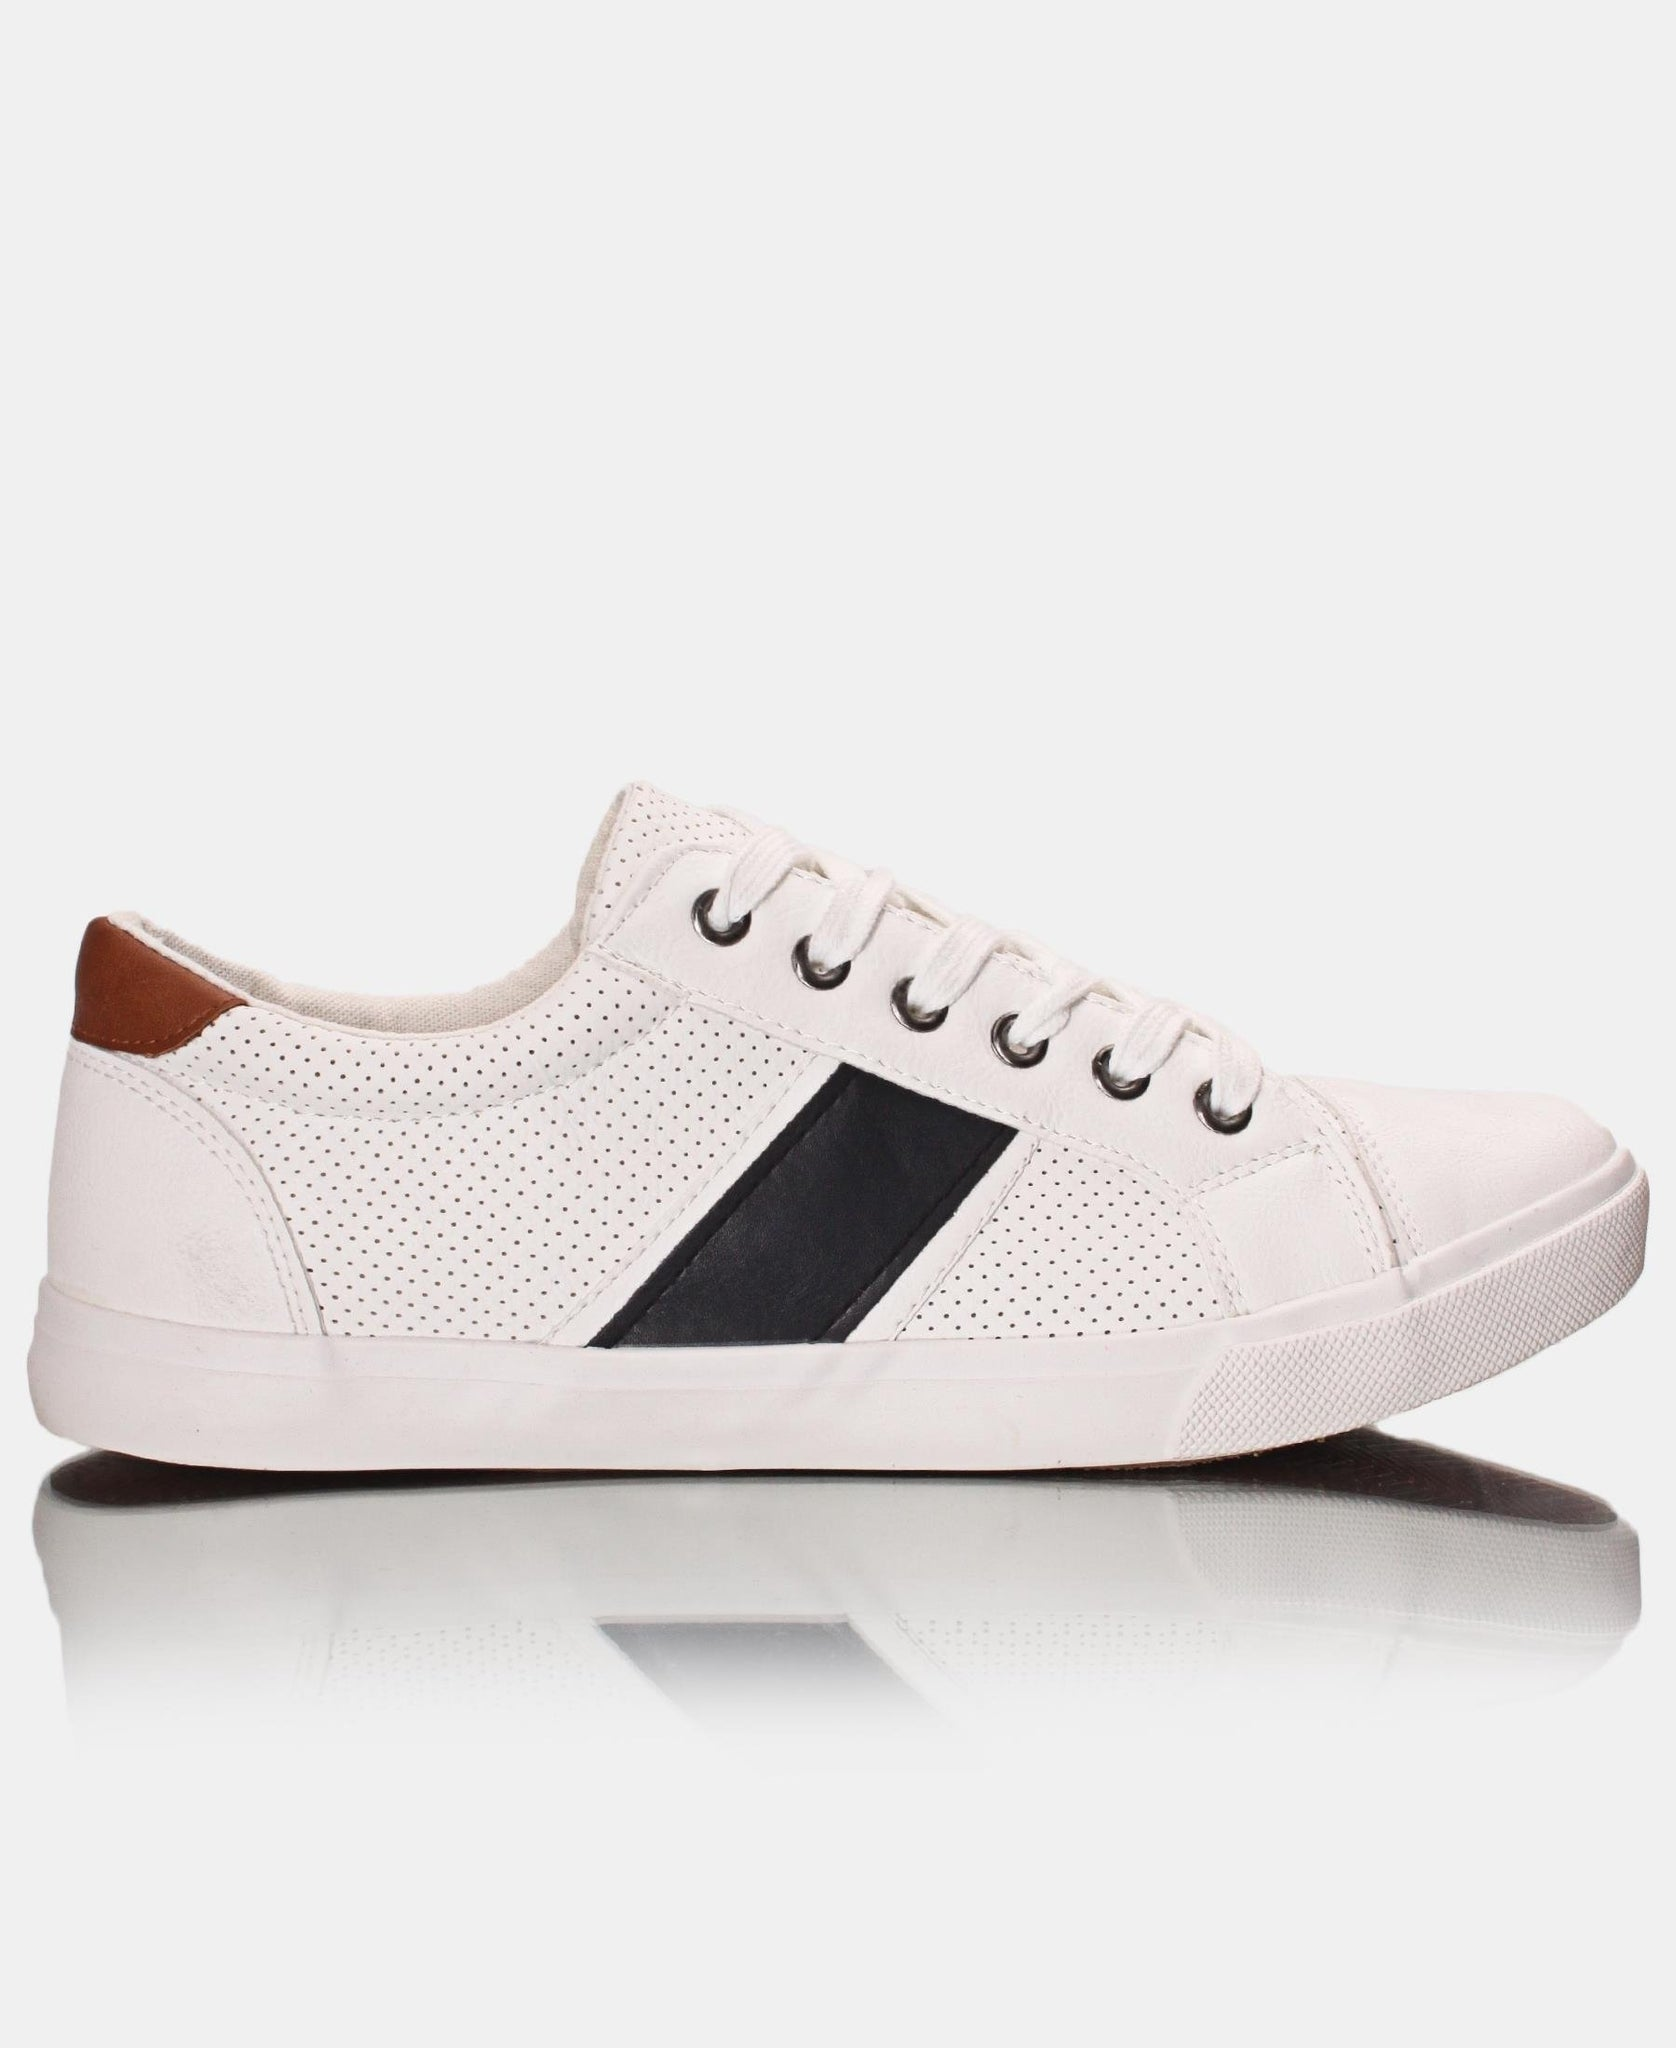 Men's Plug Sneakers - White